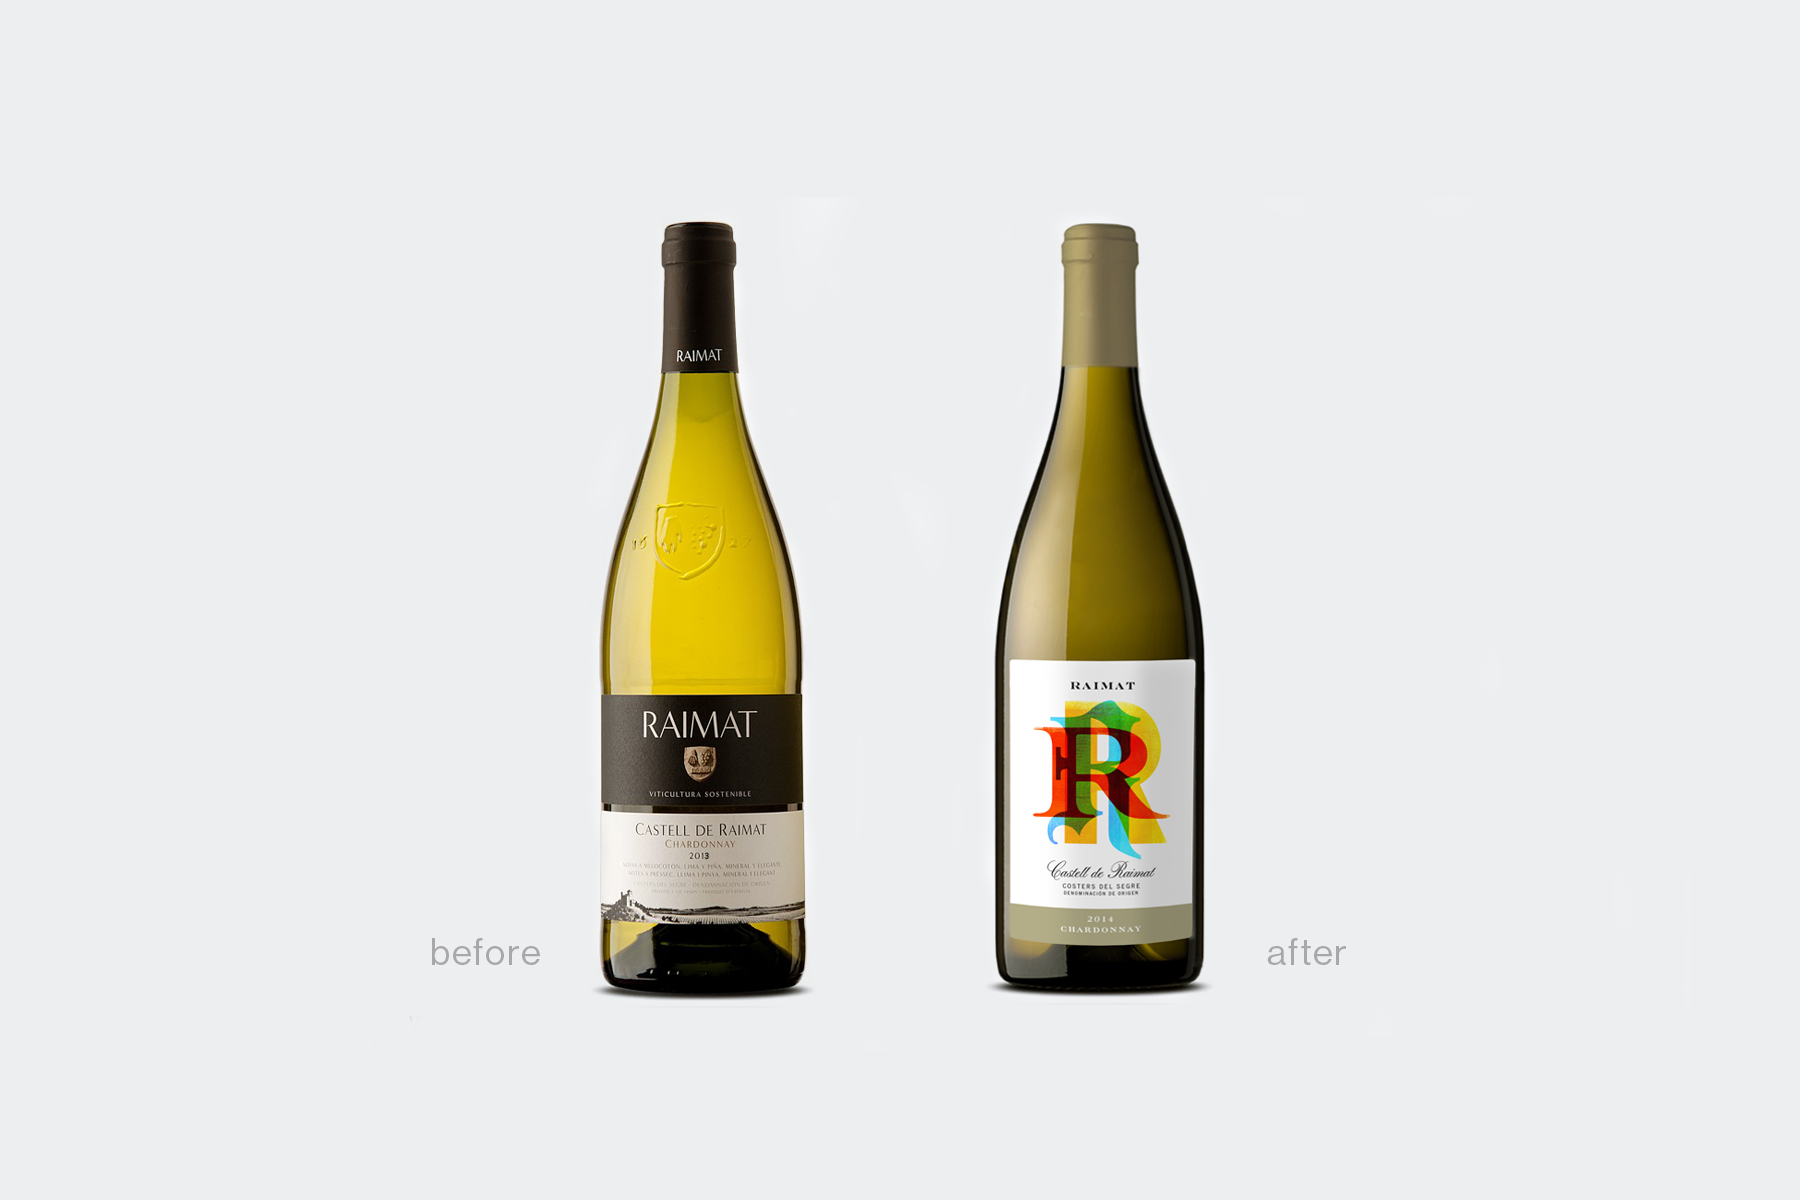 Raimat Wine redesign before and after